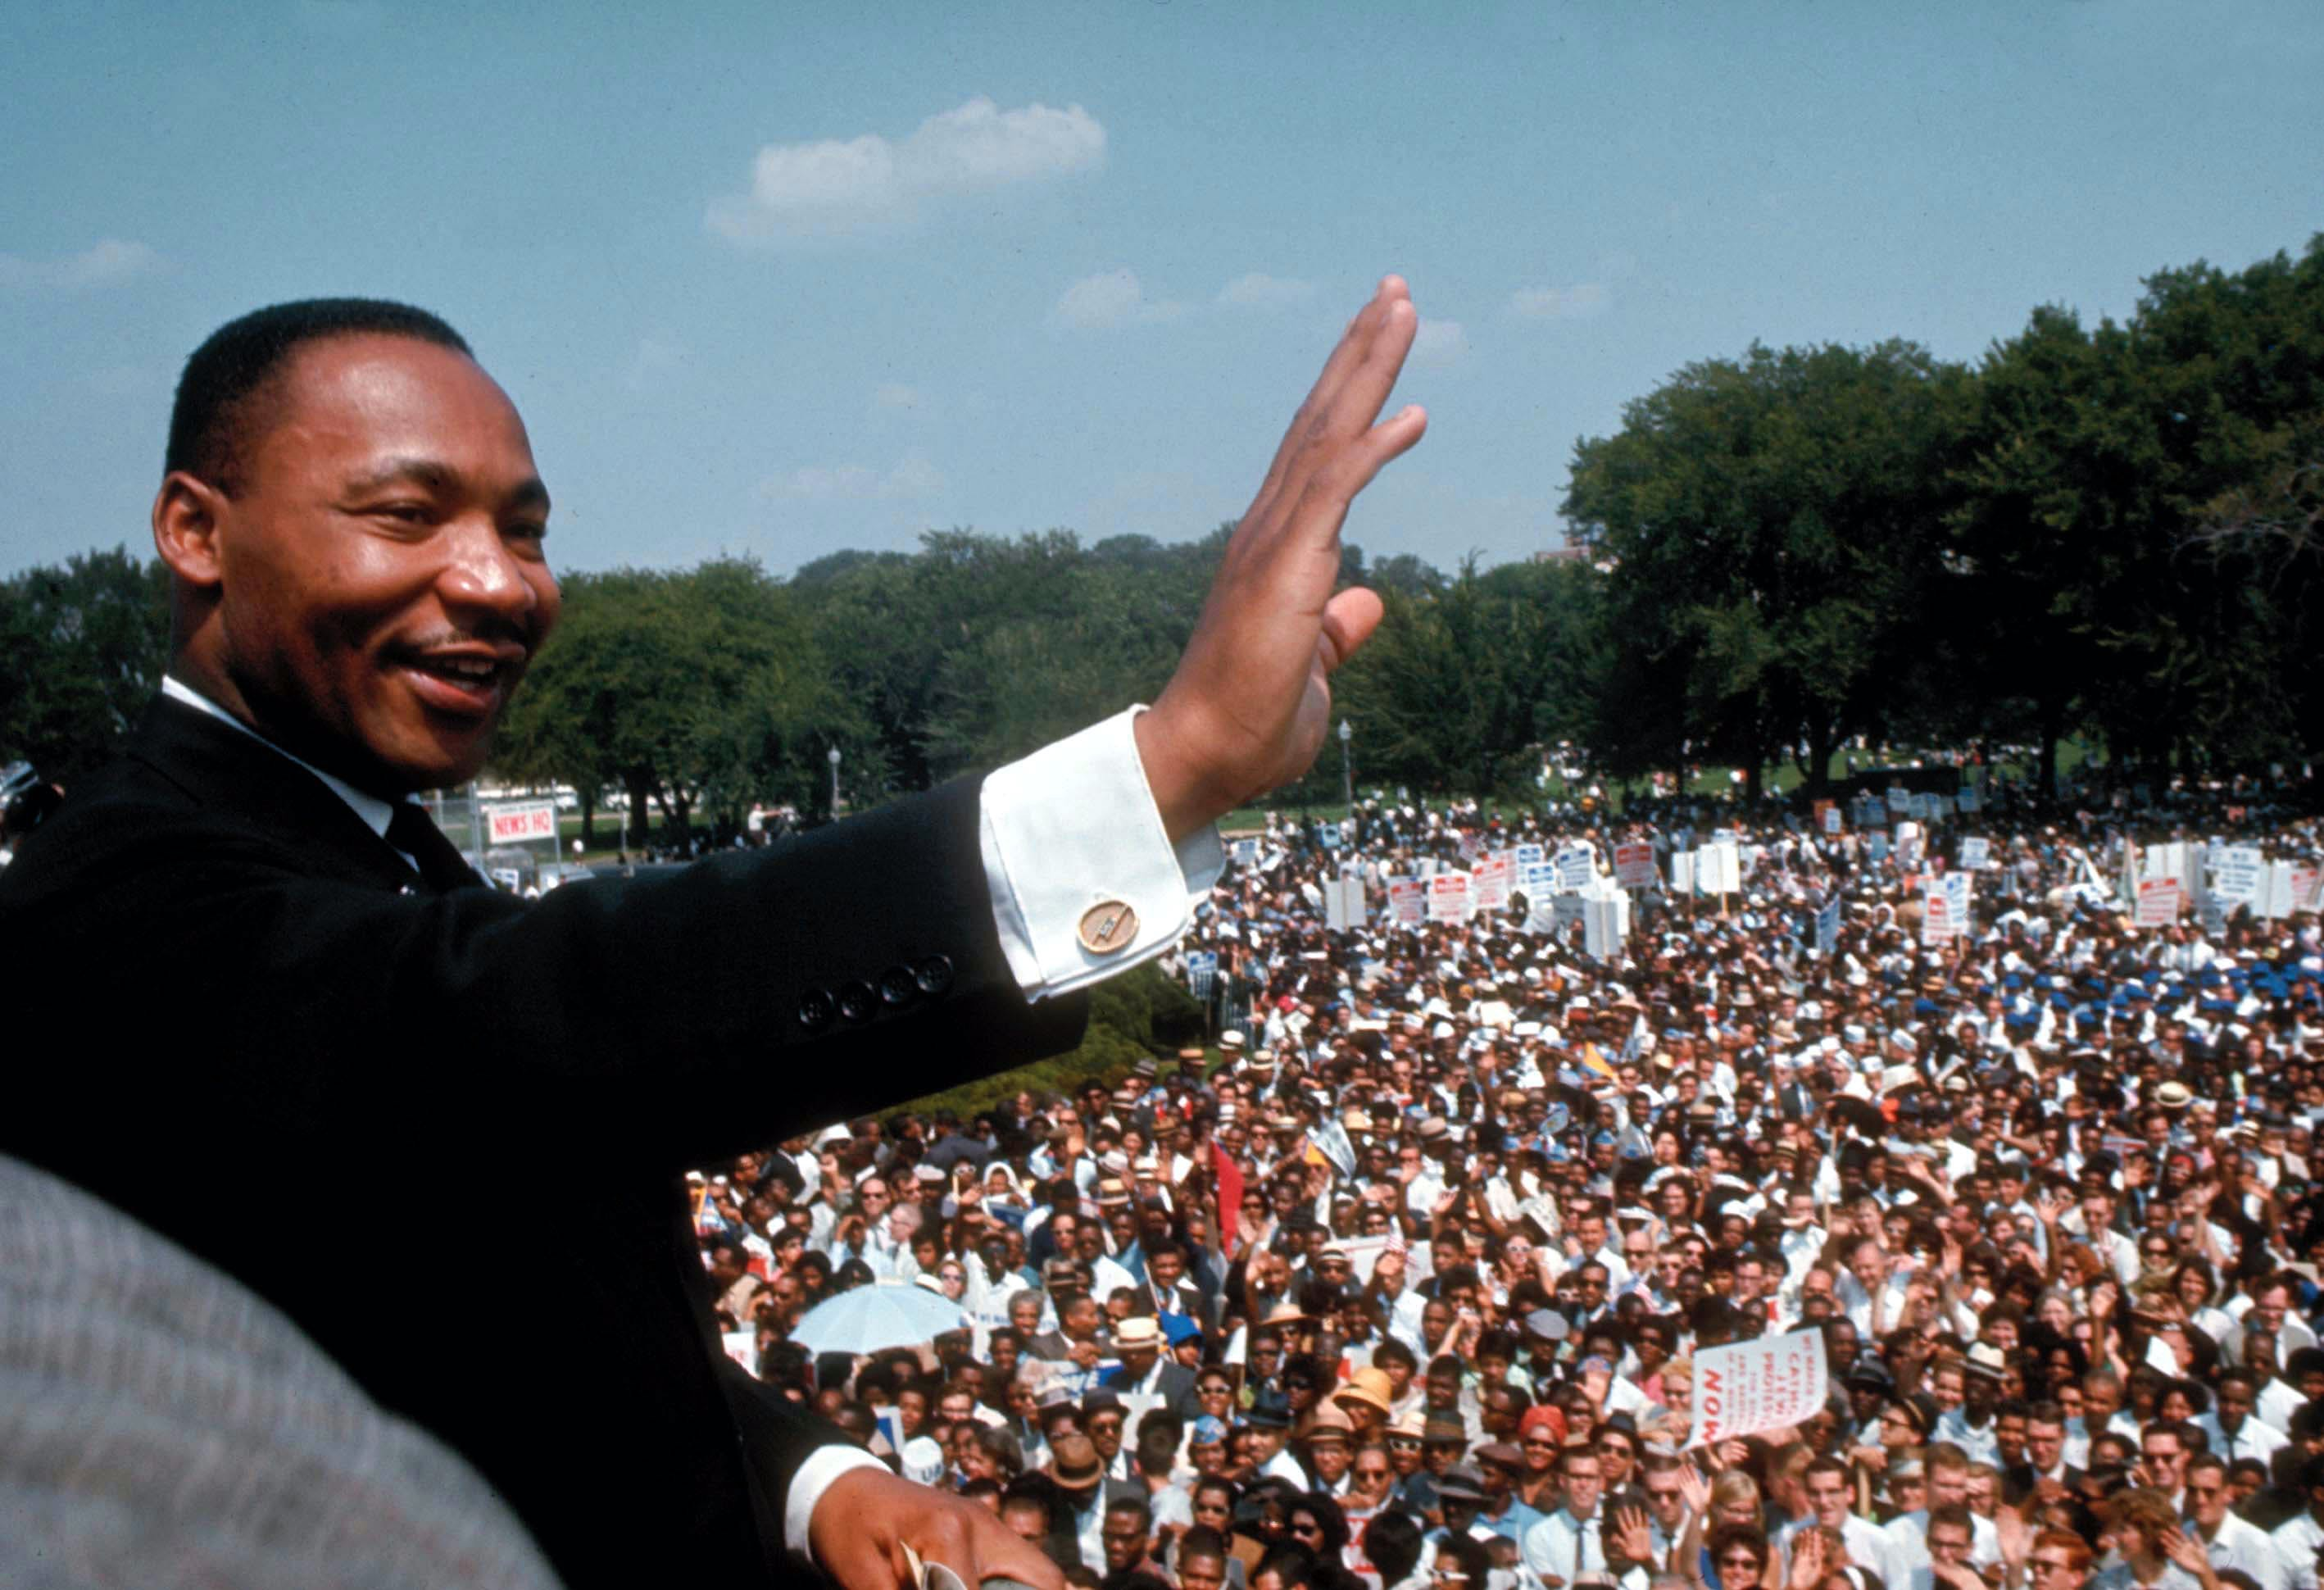 Dr. Martin Luther King Jr. smiling and waving to the crowd gathered at the March on Washington